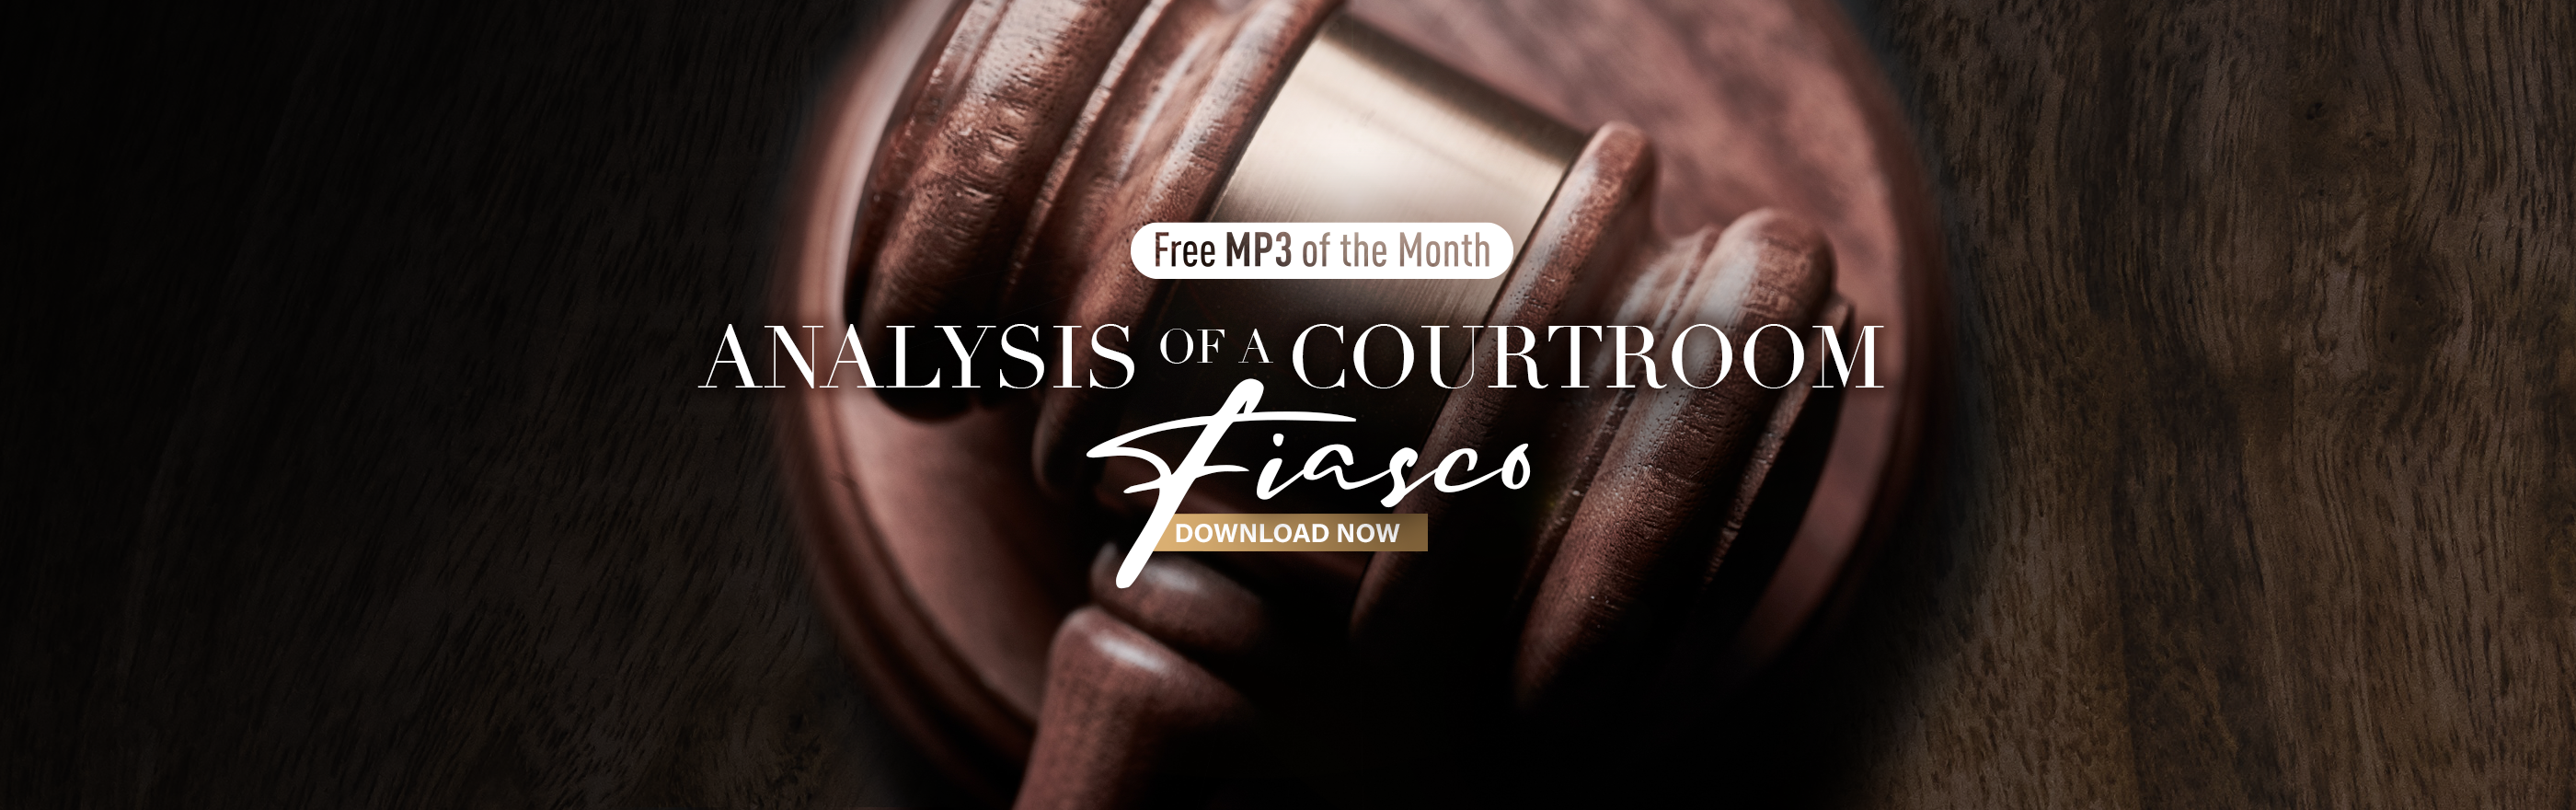 image of gavel for Courtroom Fiasco free MP3